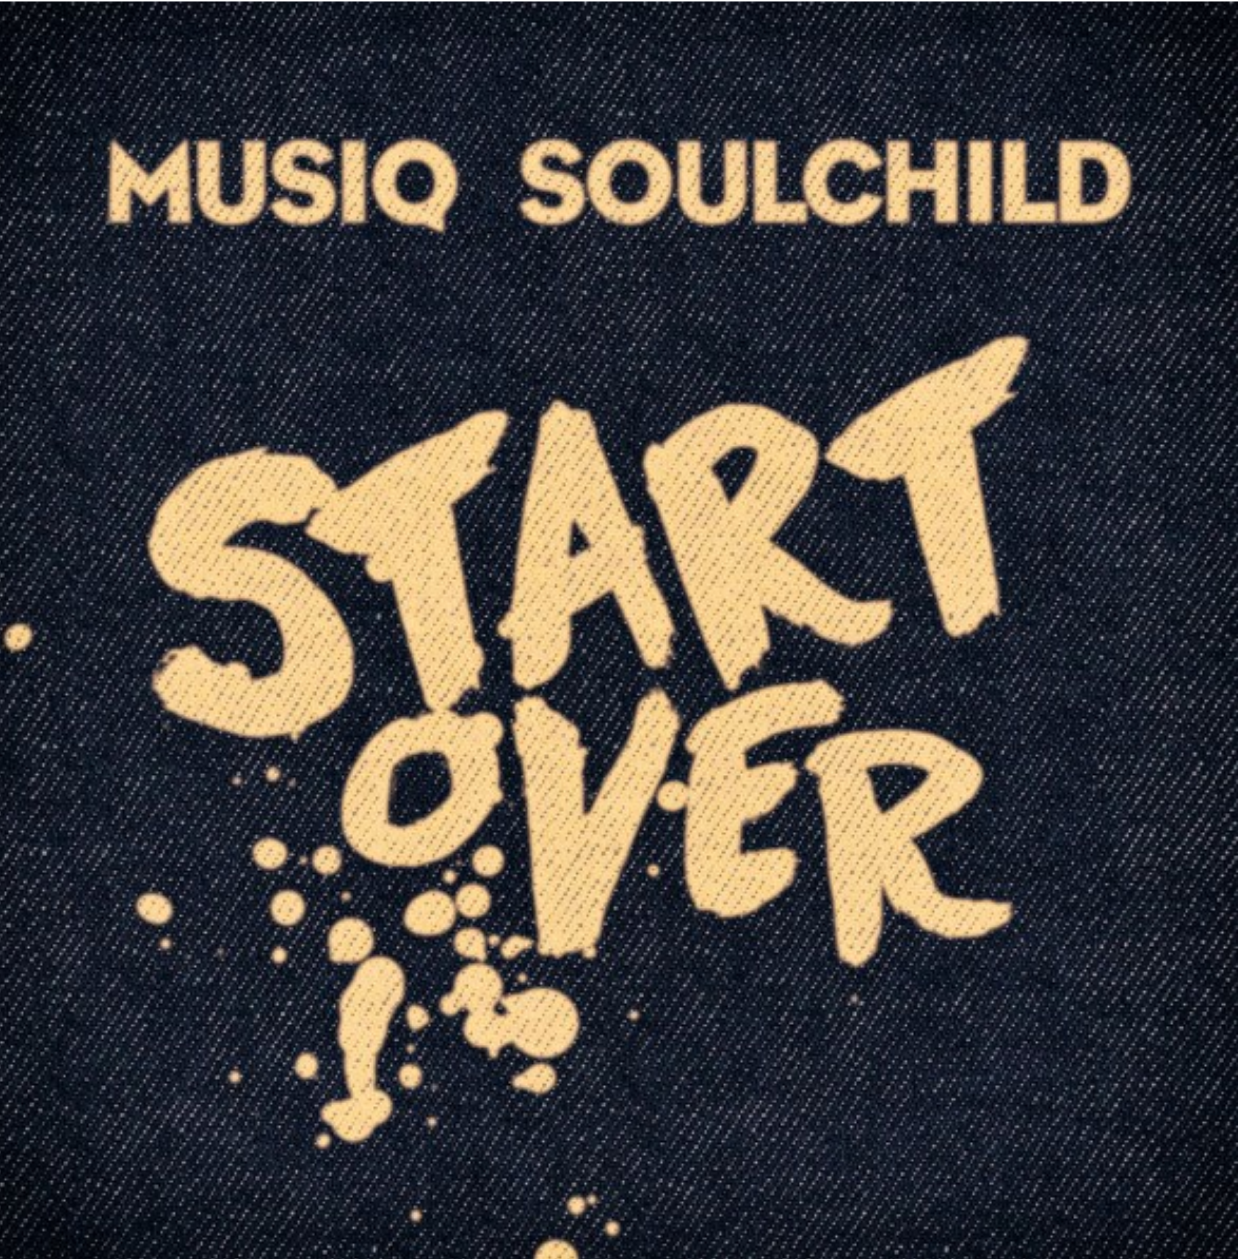 Musiq Soulchild Start Over